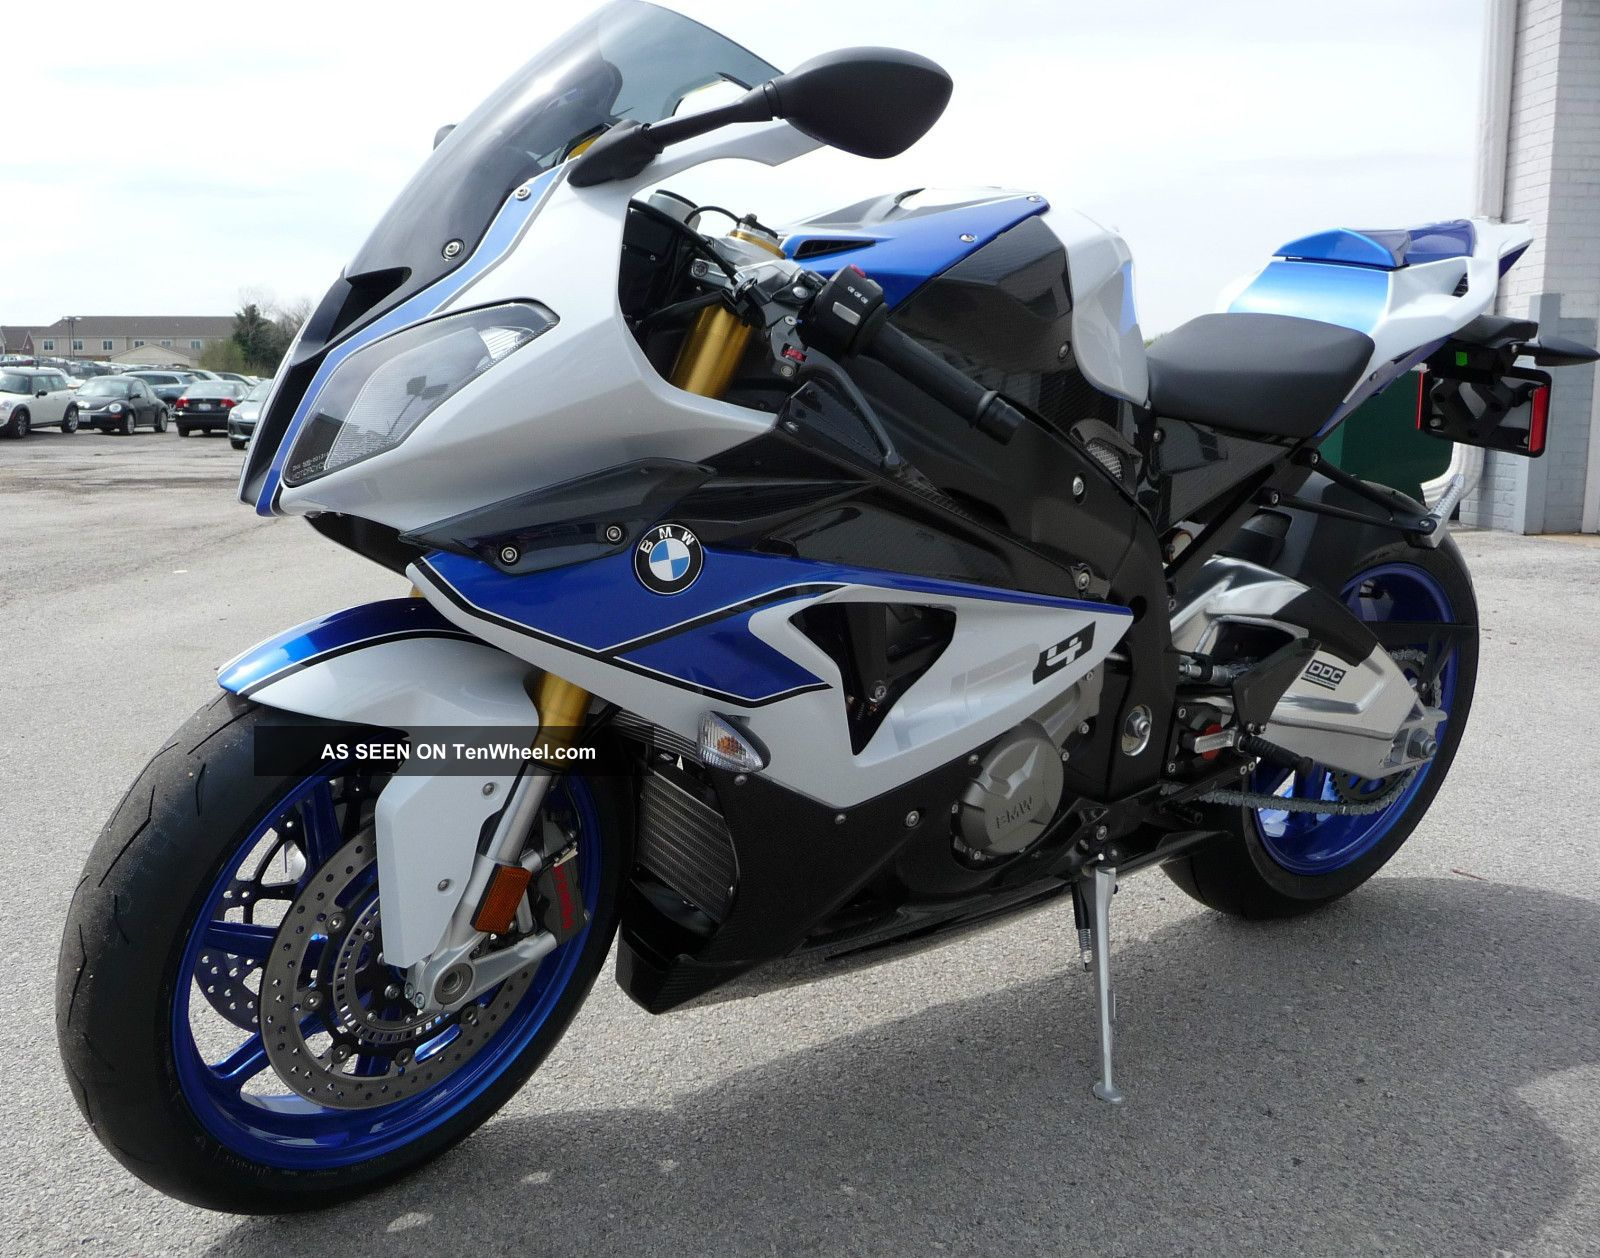 Bmw Hp4 Competition Model Motorcycle 2013 S1000rr Bike